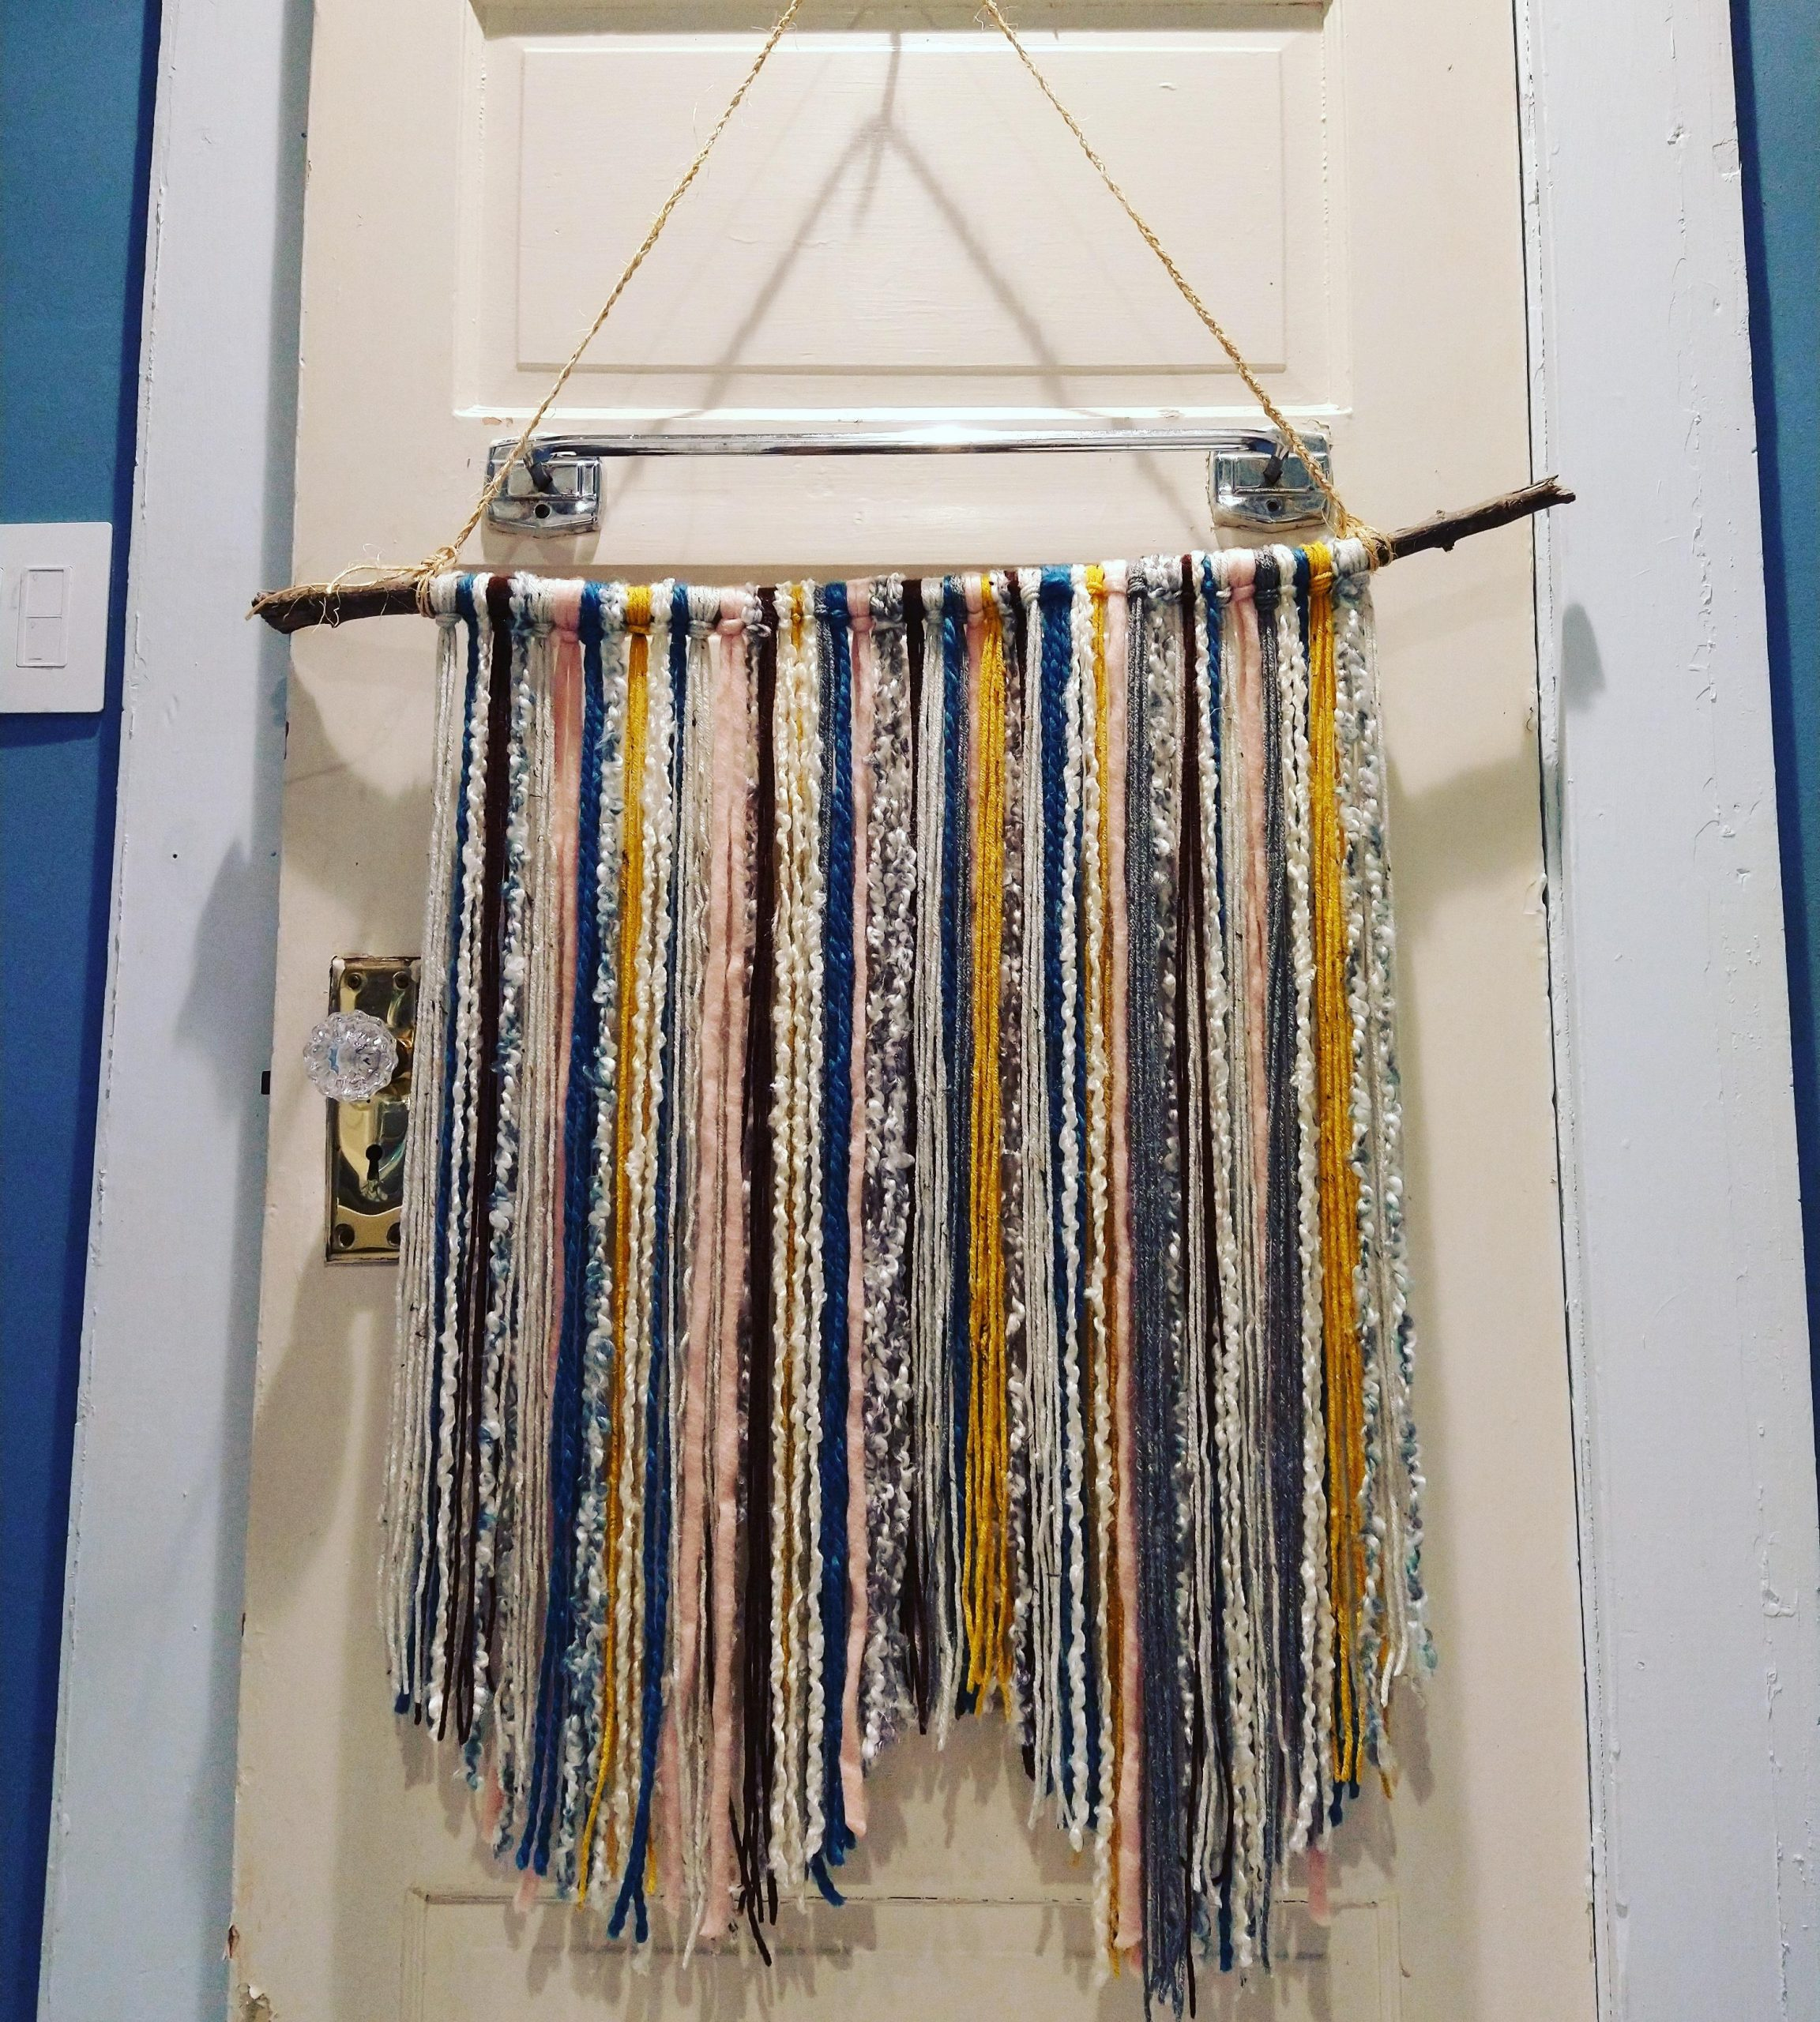 jgzw0v9u9gm51 scaled - My first large yarn wall hanging - hobbies, crafts